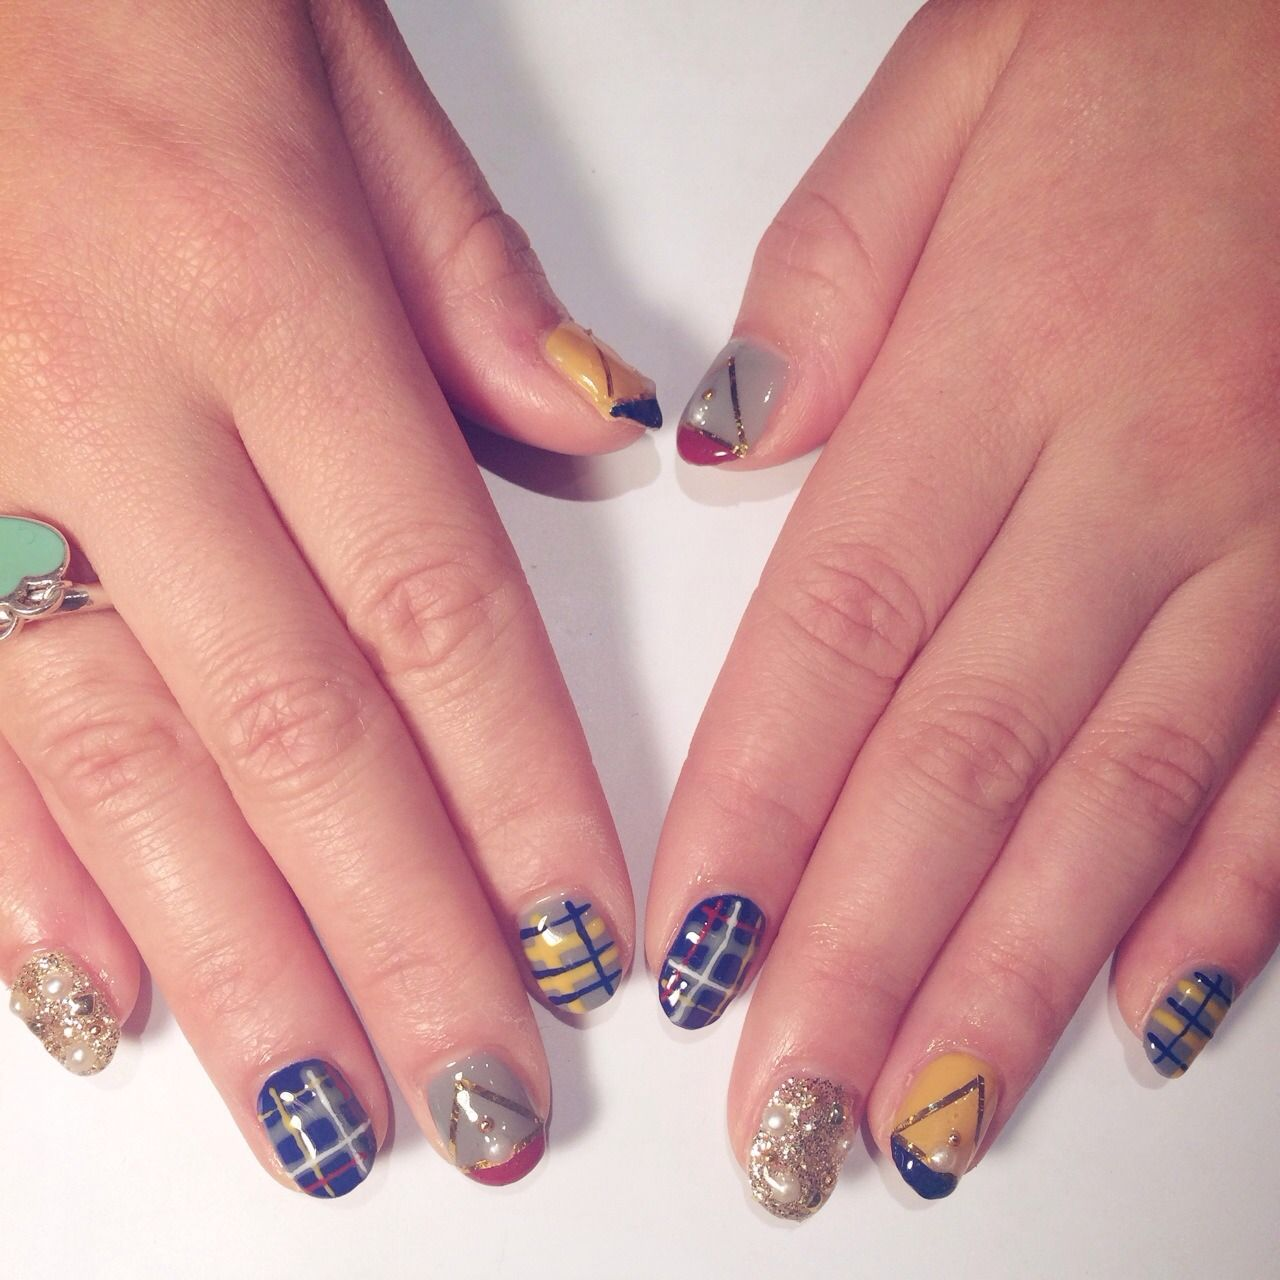 Nice Nails | Nails | Pinterest | Nice nail designs, Nail tape and ...